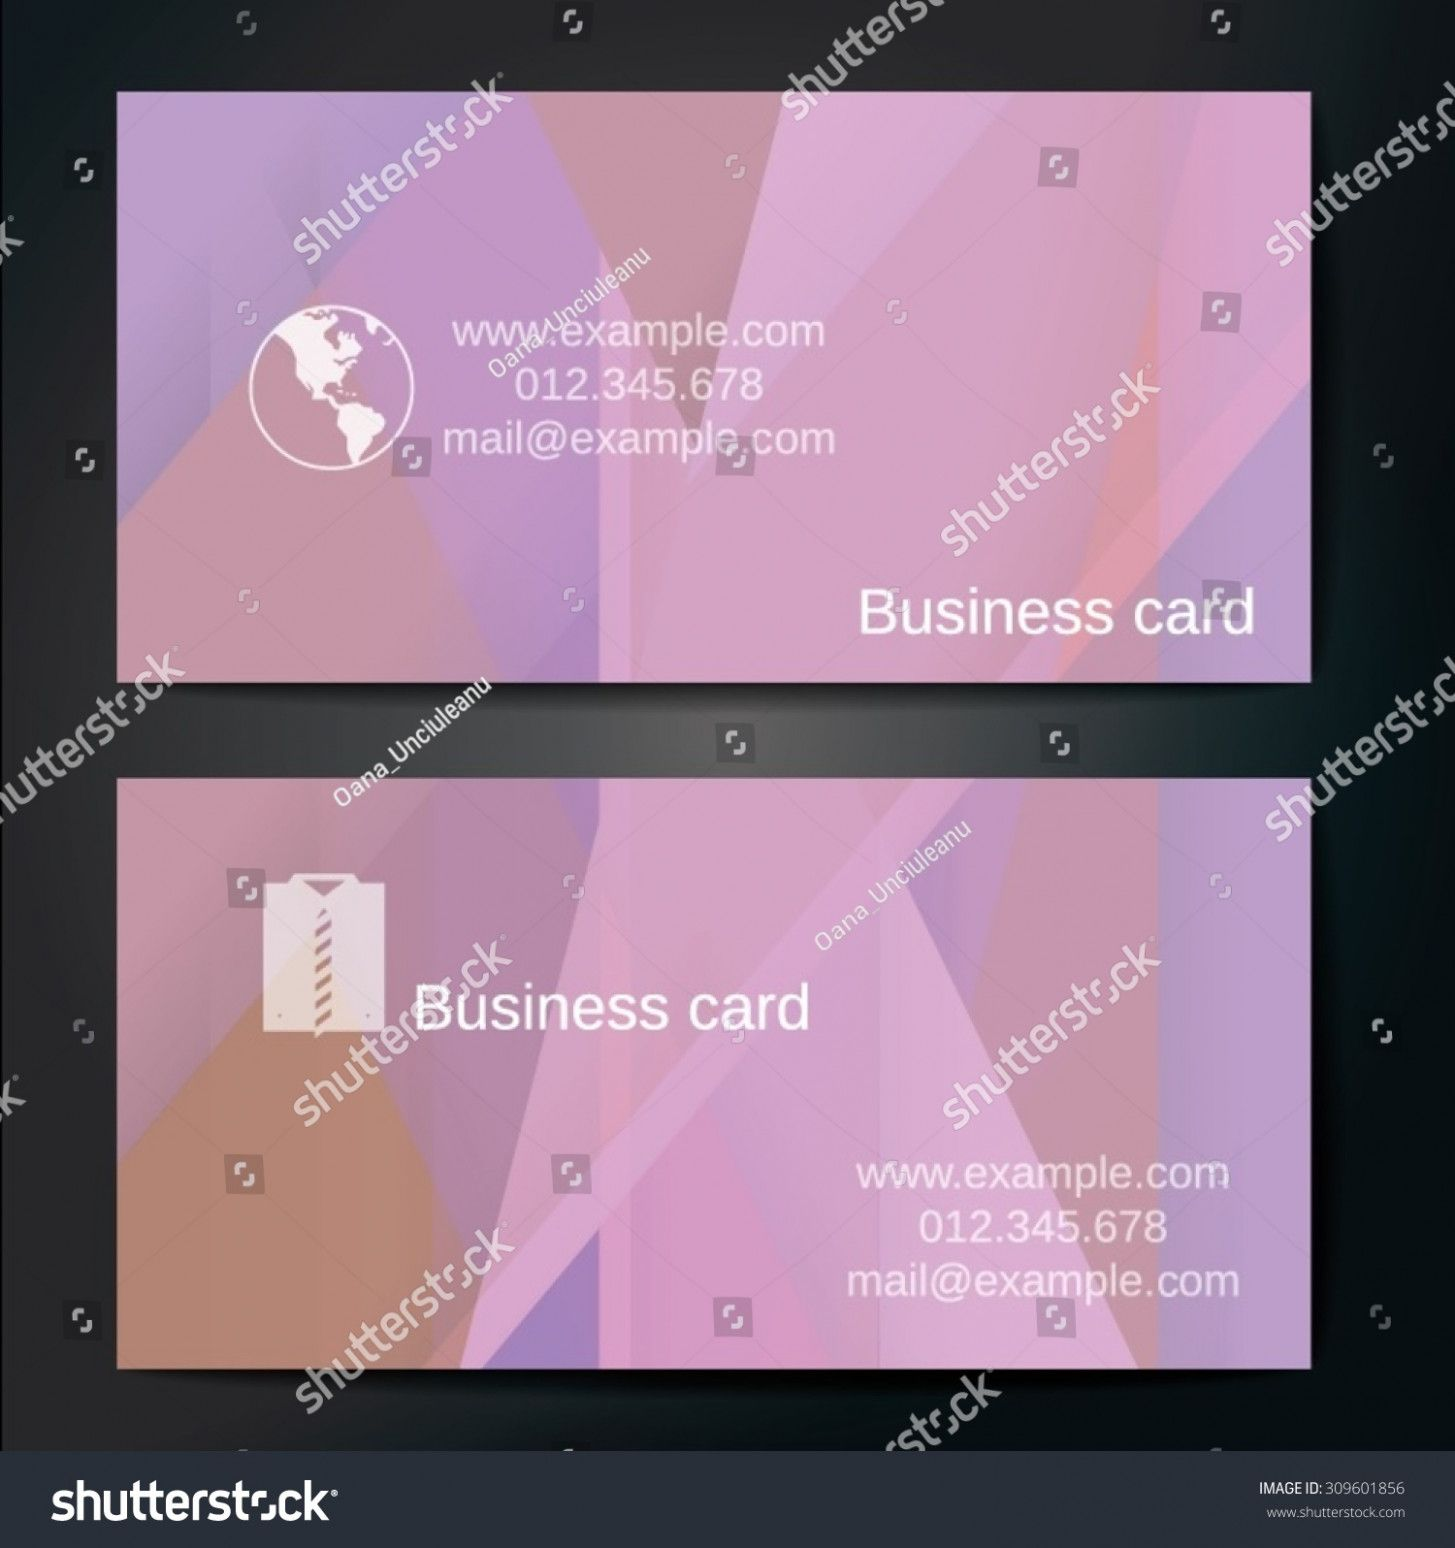 What Is The Size Of A Business Card In Cards Business Business